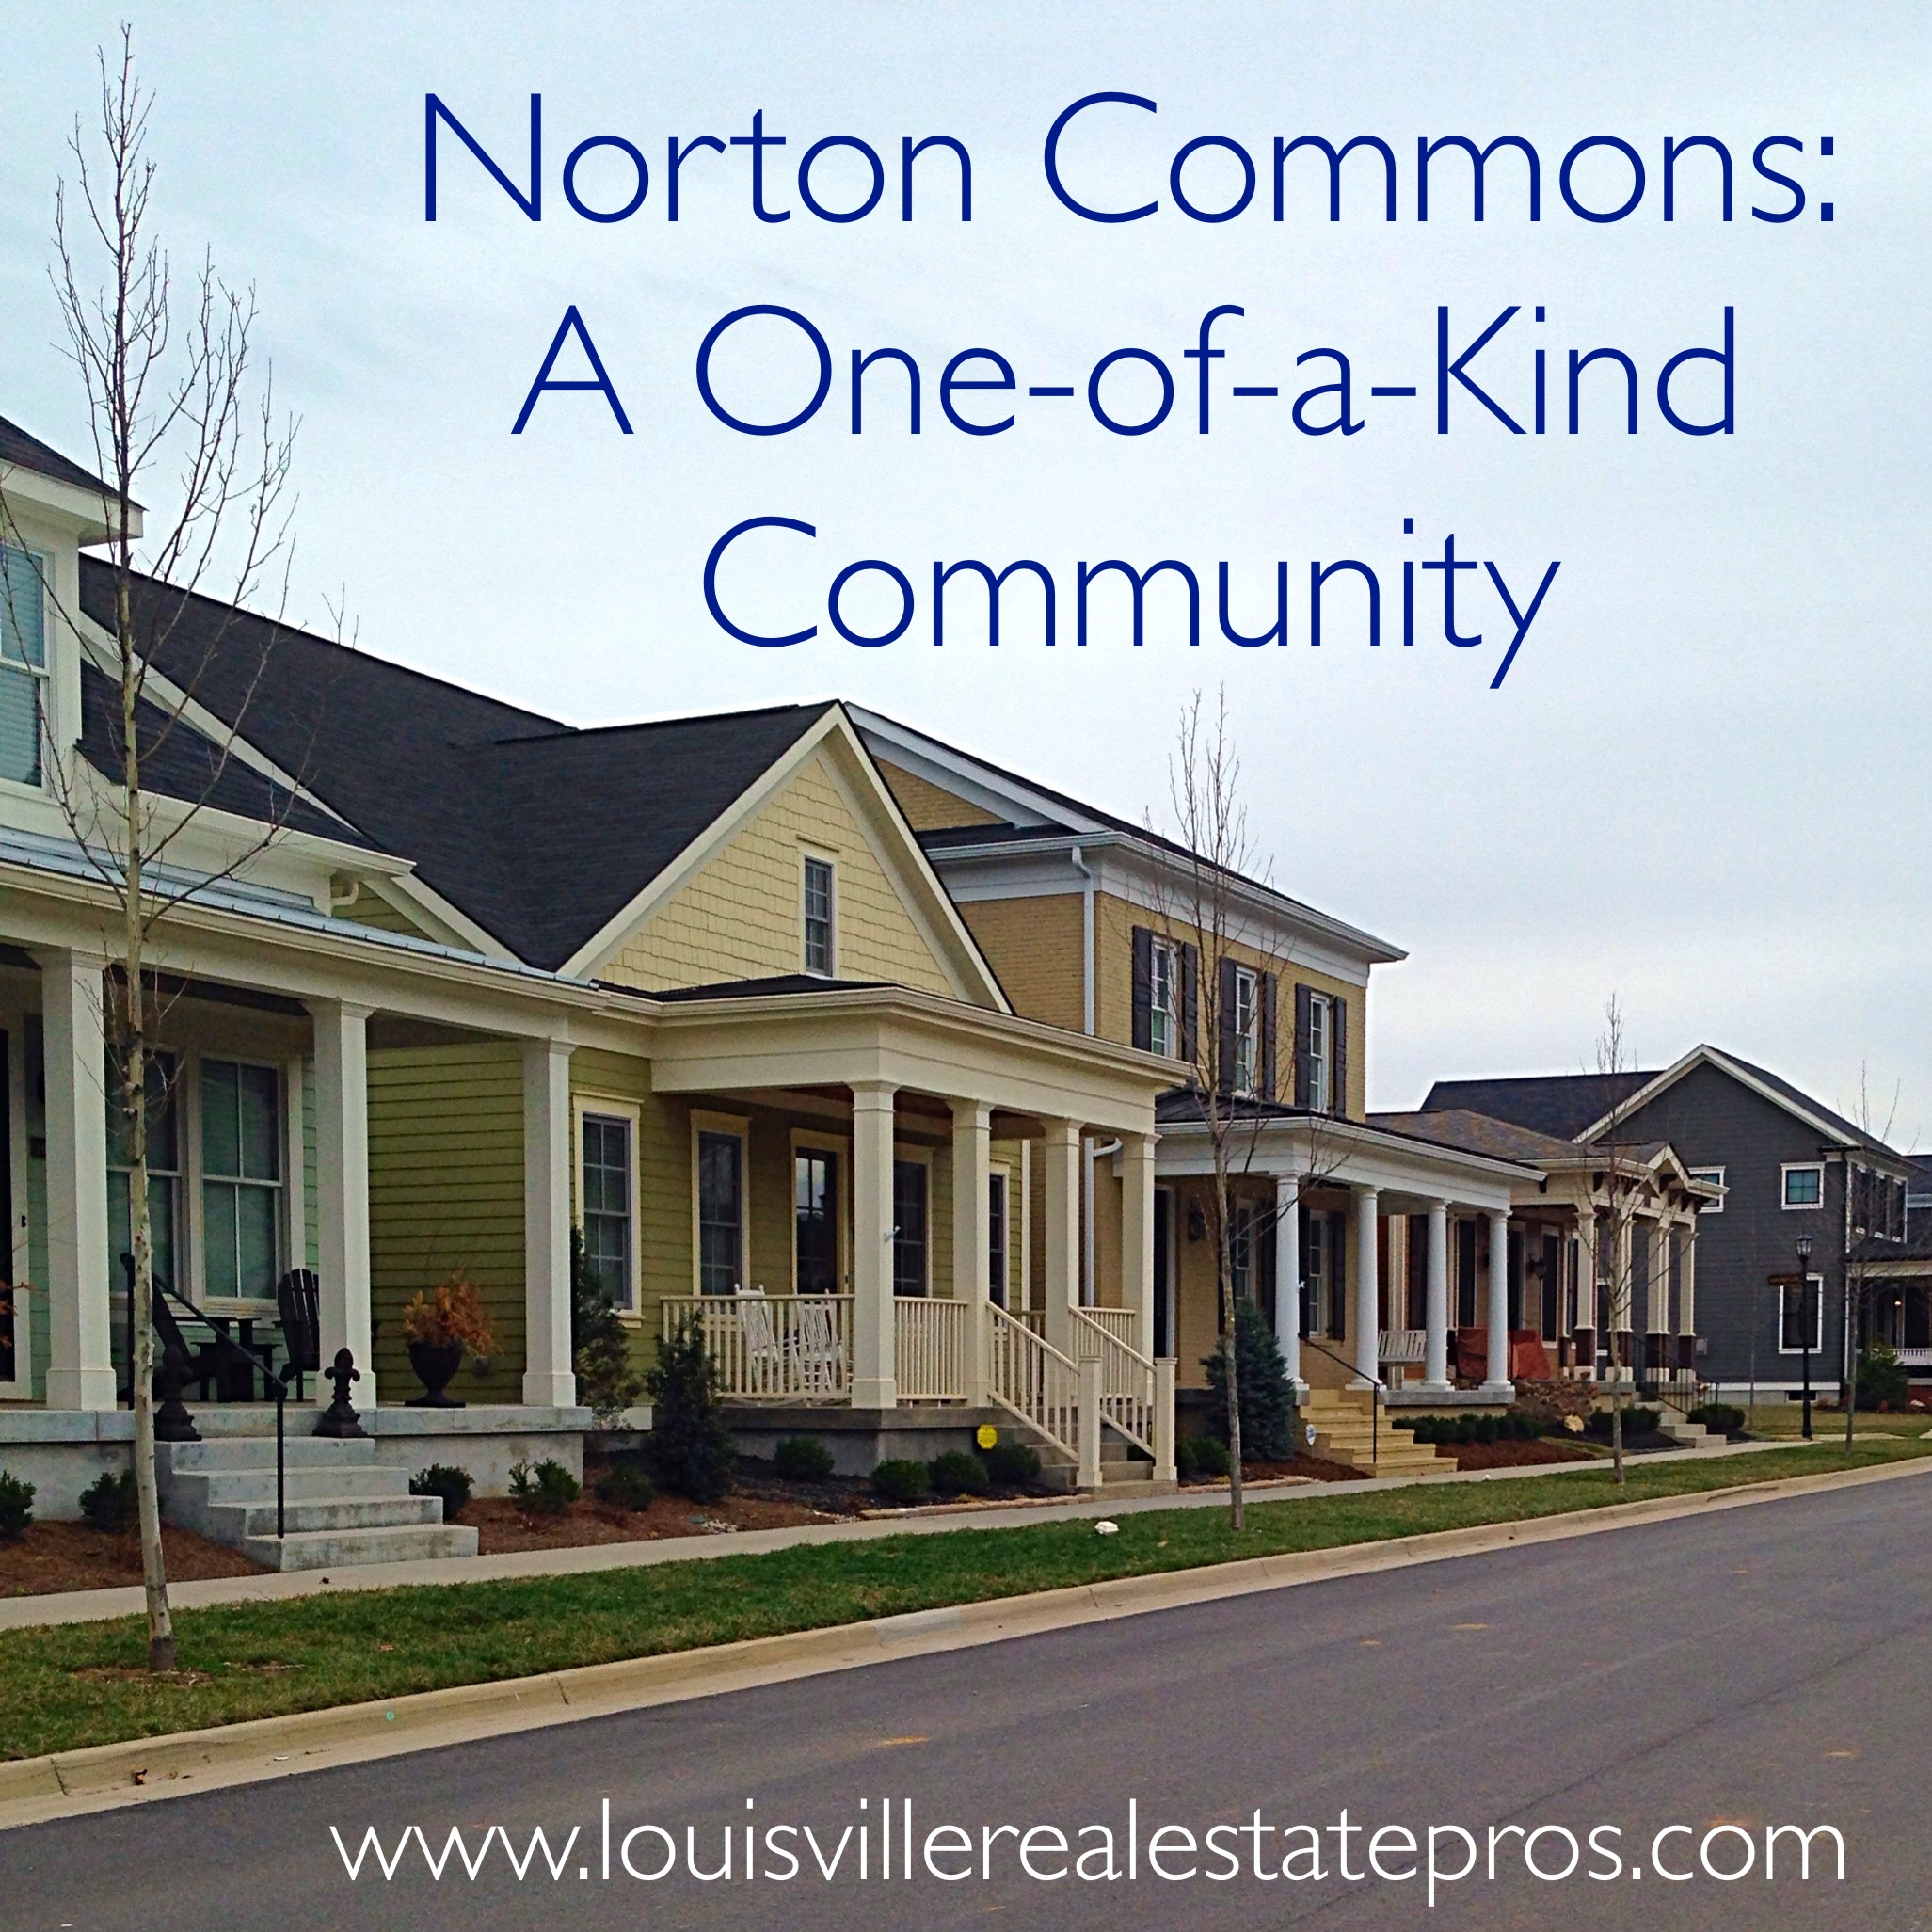 Norton Commons - A One-of-a-Kind Community Just Outside of Louisville, KY